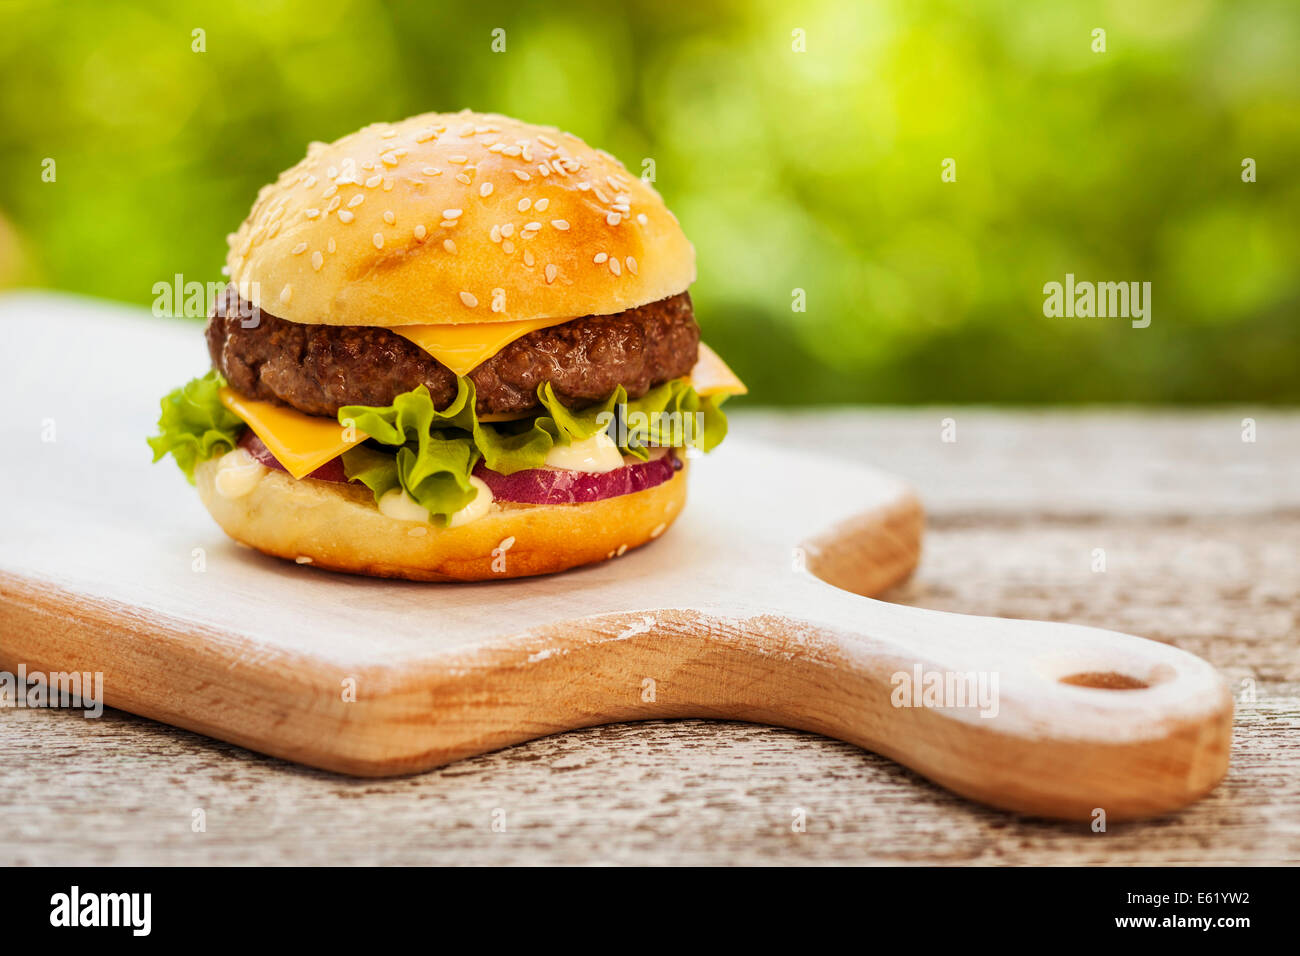 Tasty burger with cheese, lettuce, onion and tomatoes served outdoor on a wooden table - Stock Image